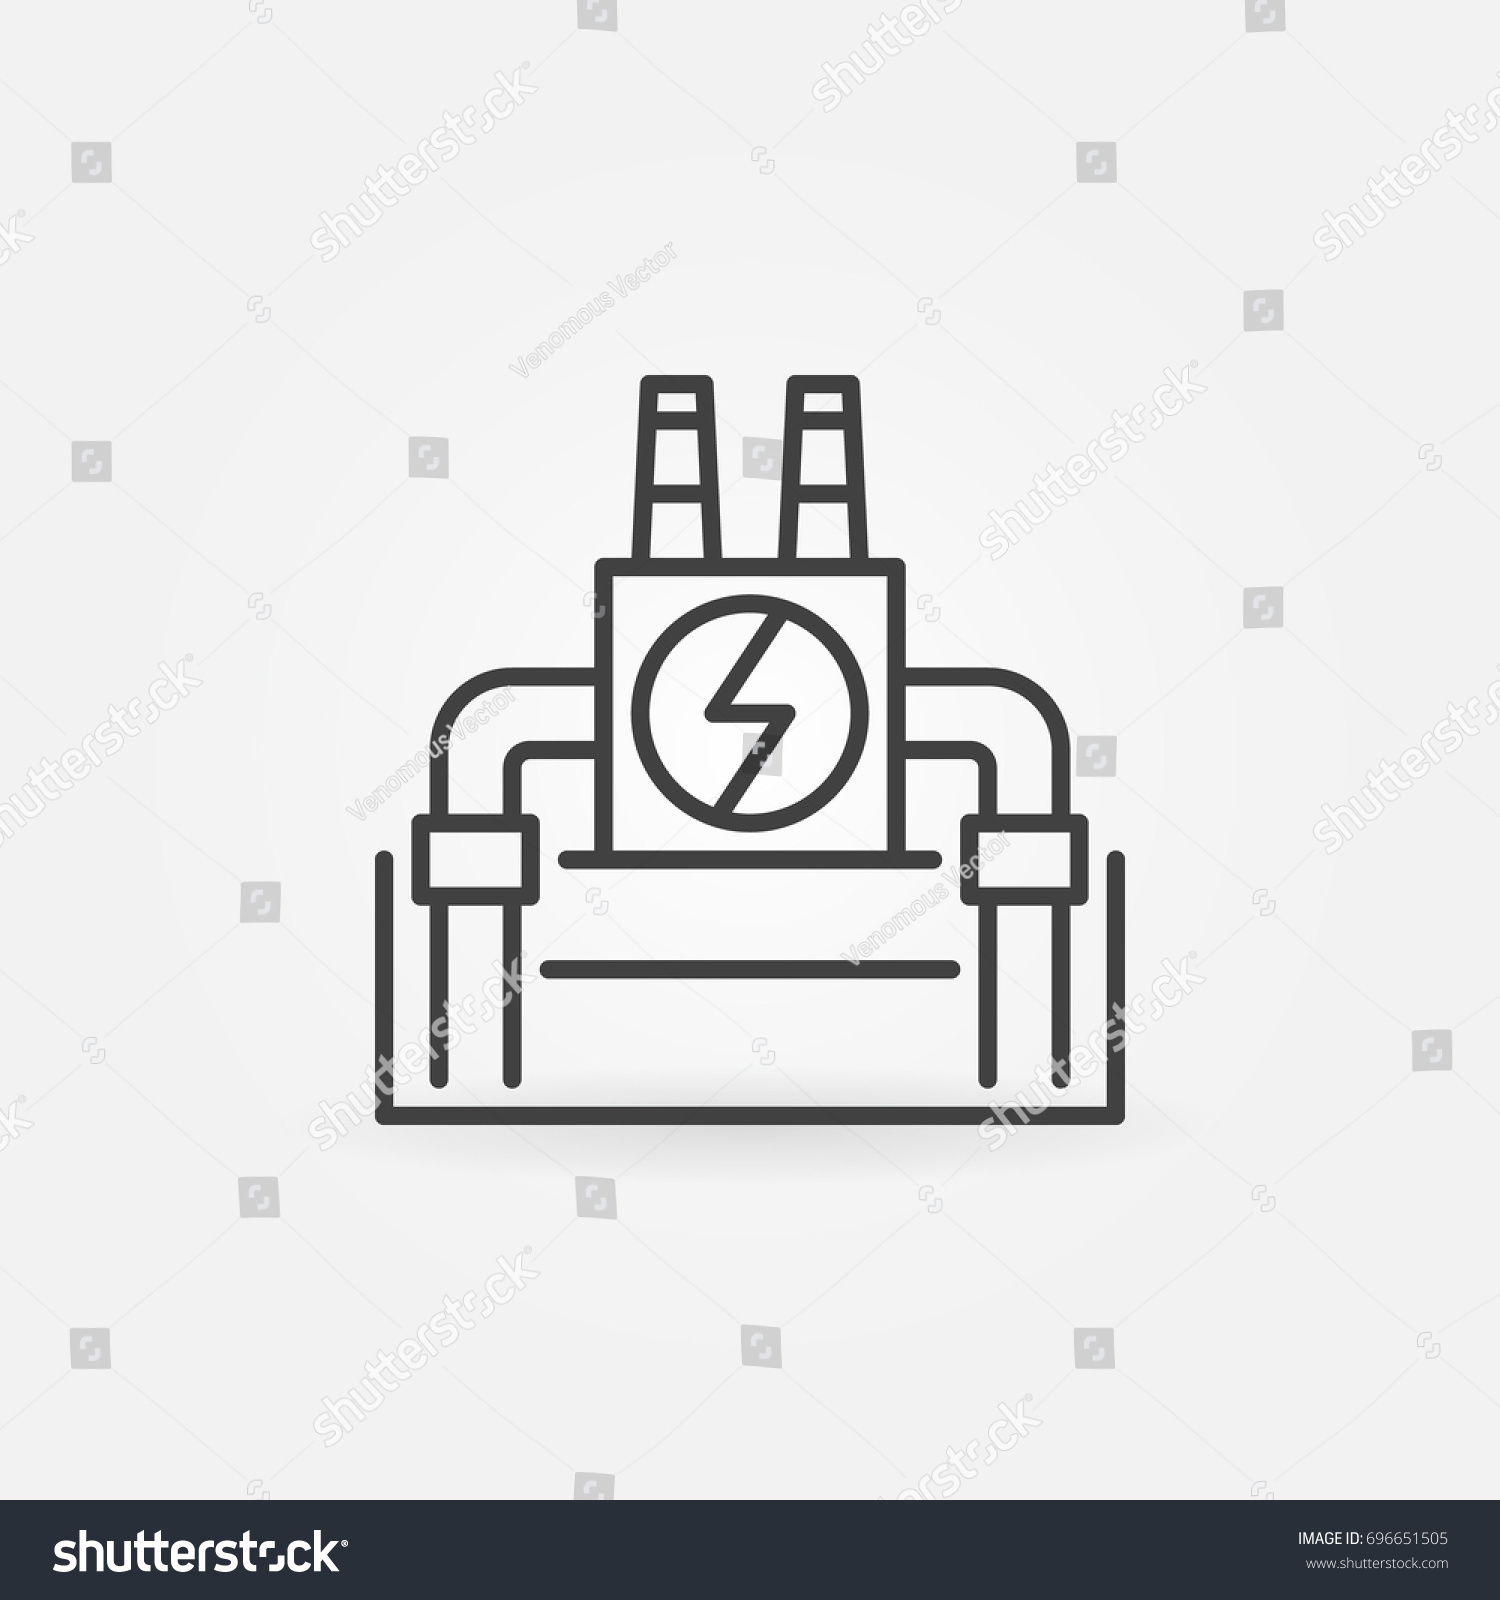 Vector Geothermal Power Plant Icon Stock Royalty Free Schematic Diagram Outline Minimal Symbol Or Design Element